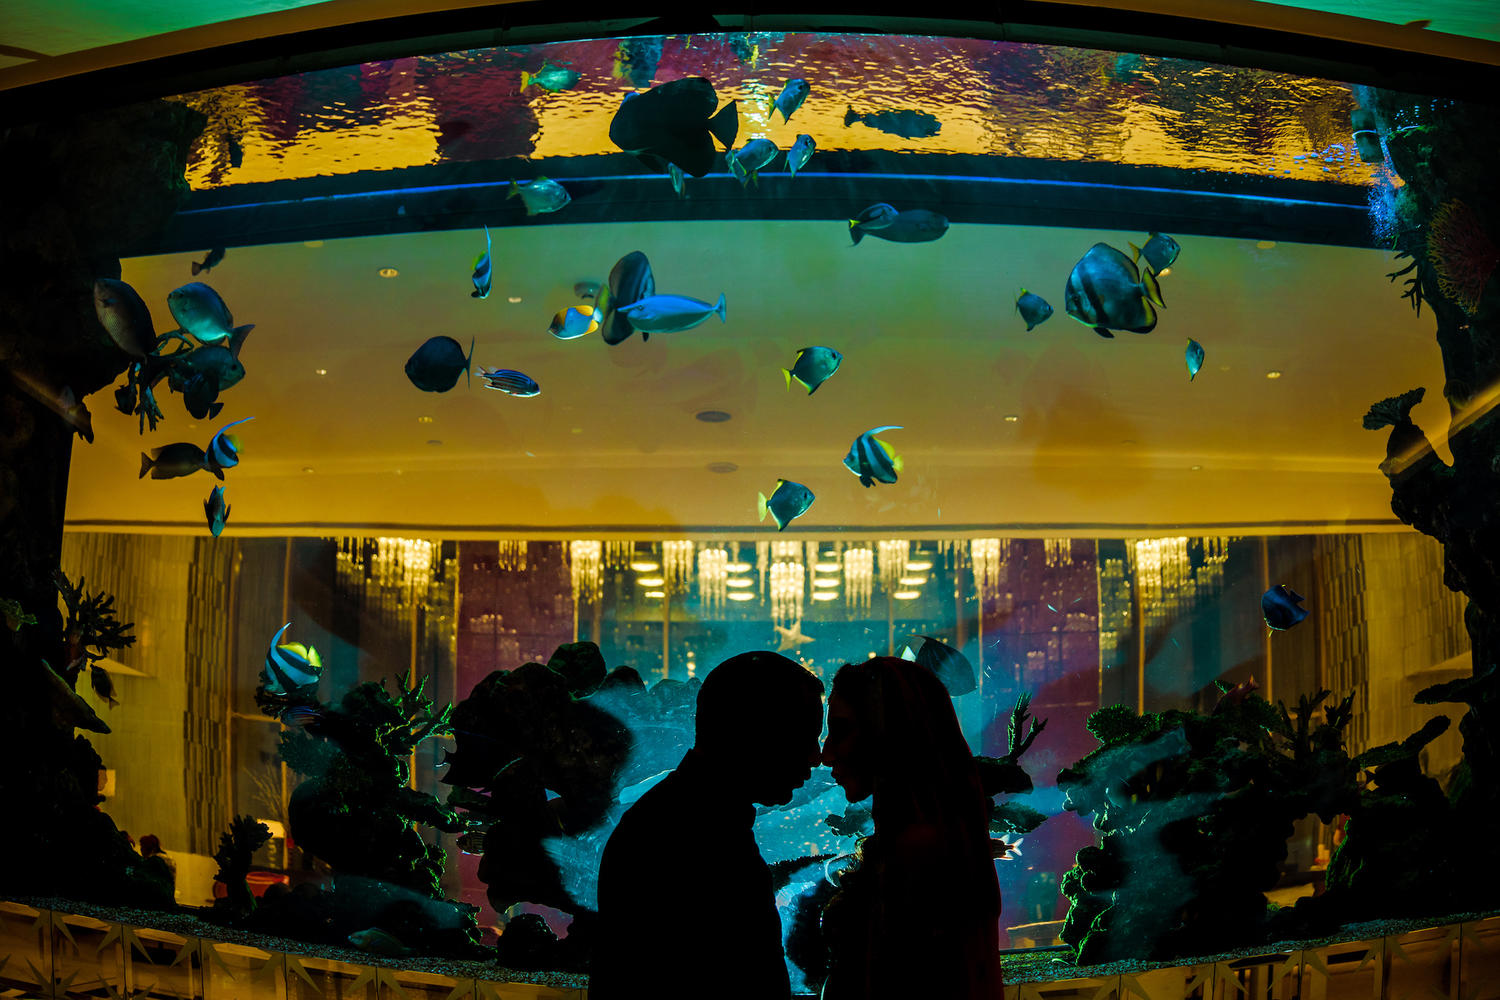 finding nemo Fish aquarium couple silhouette